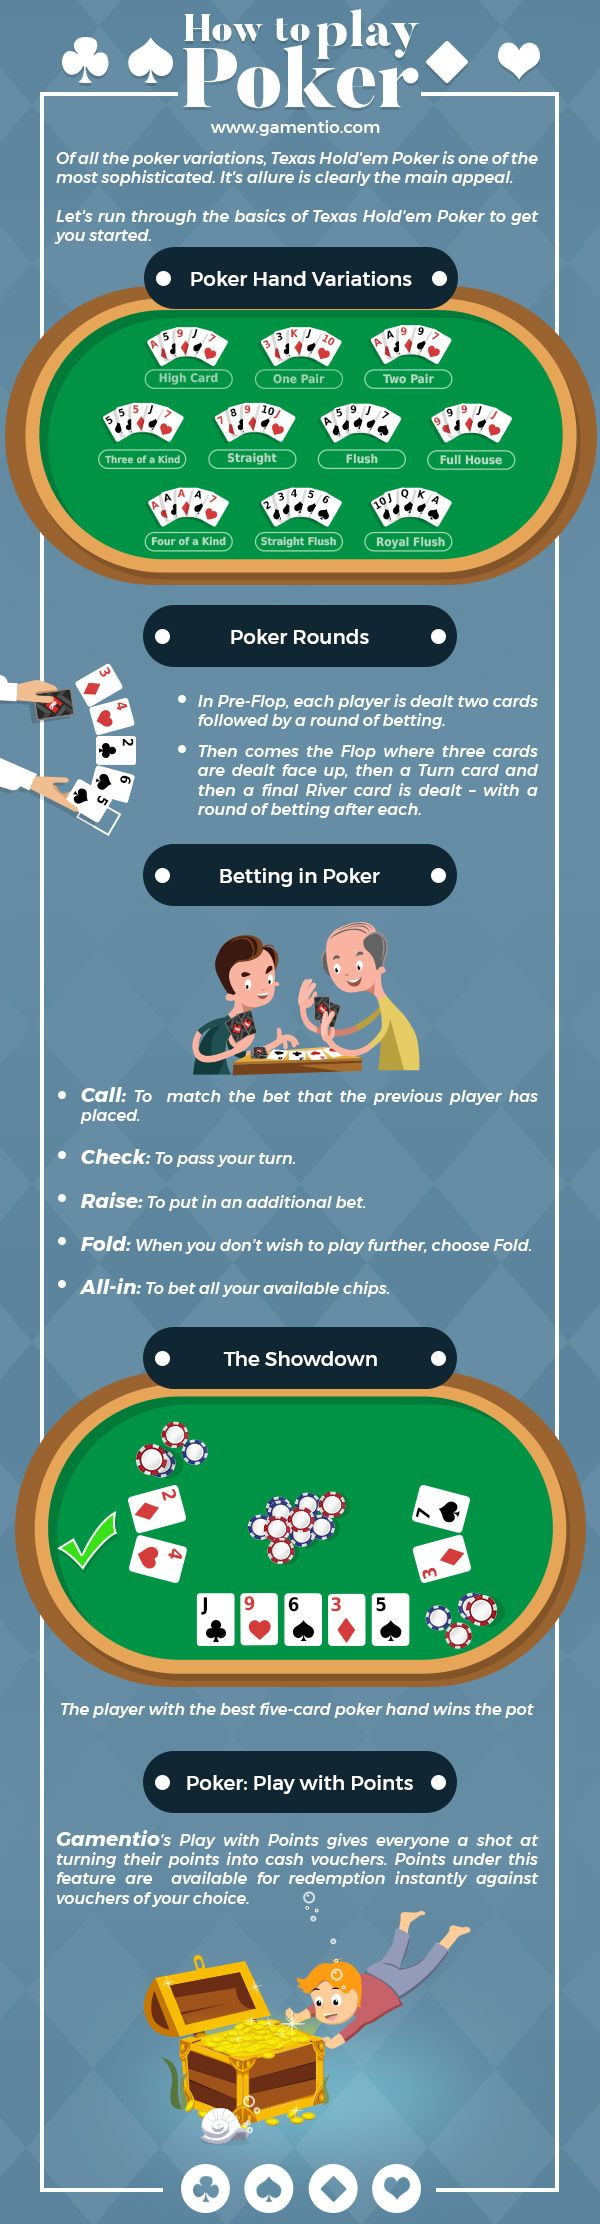 3 Card Poker Rules Learn To Play In Less Than 5 Minutes